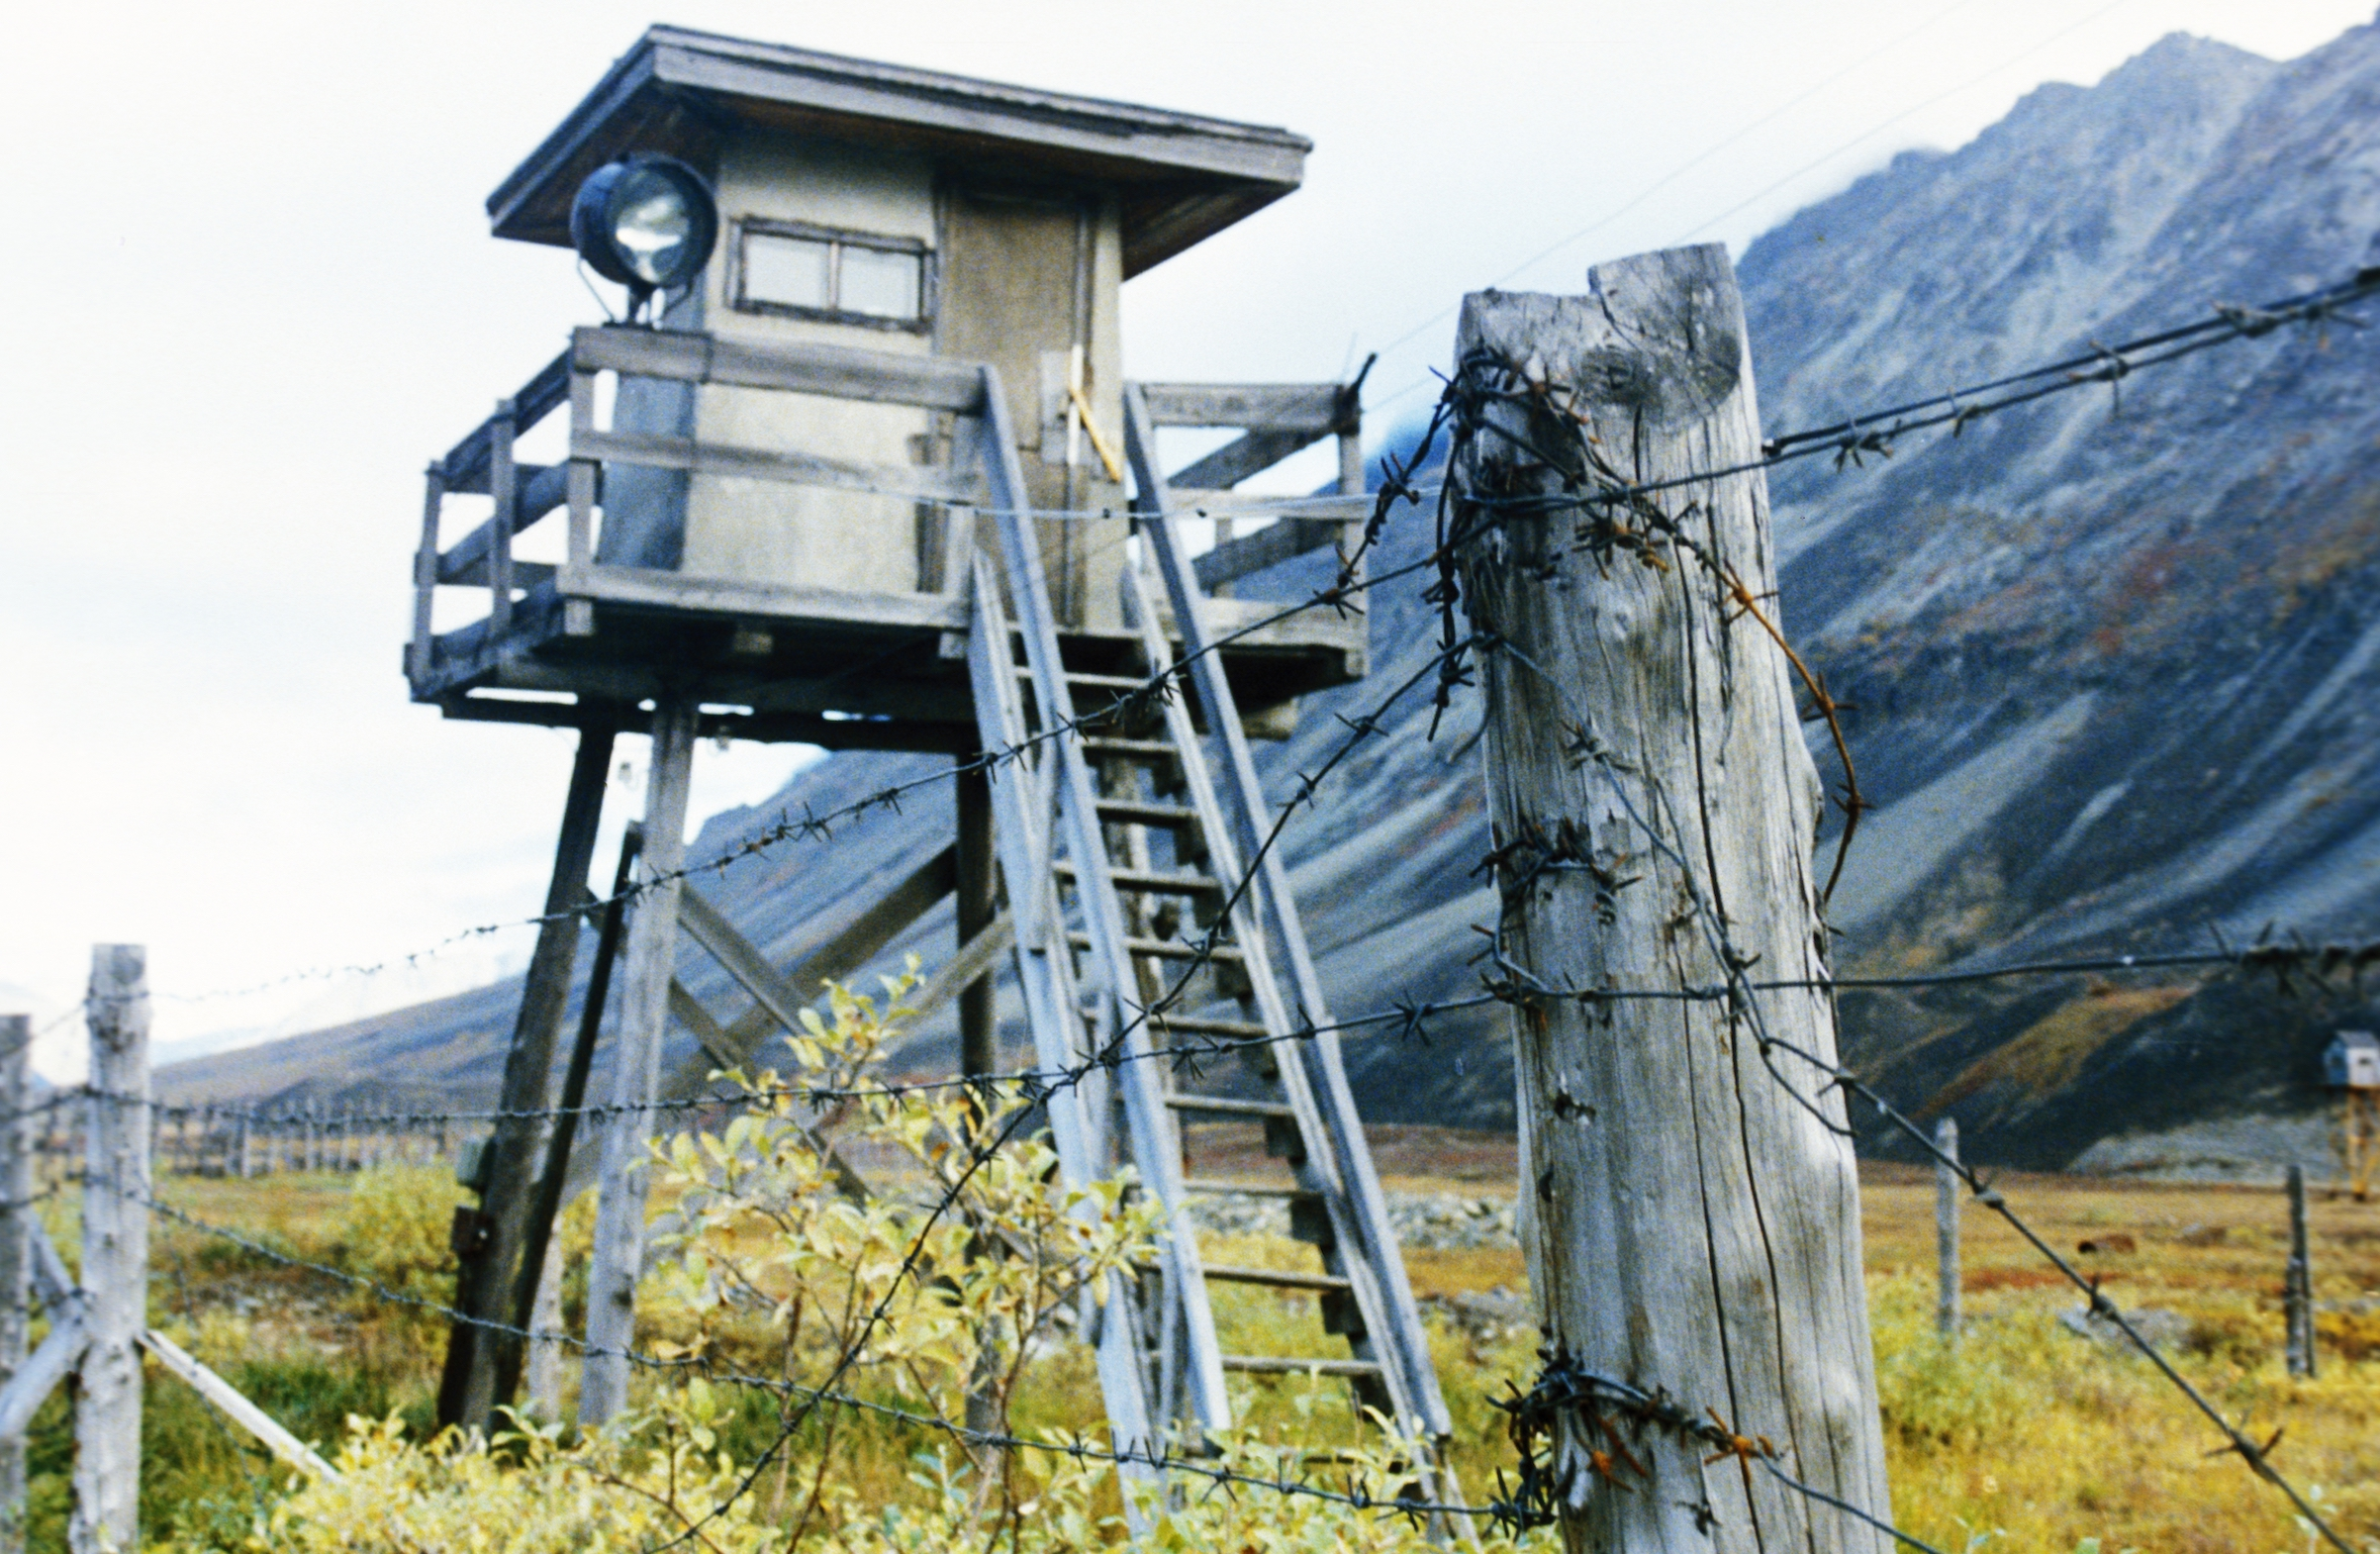 The remains of a Stalin-era gulag in Chukotka, far eastern Russia.